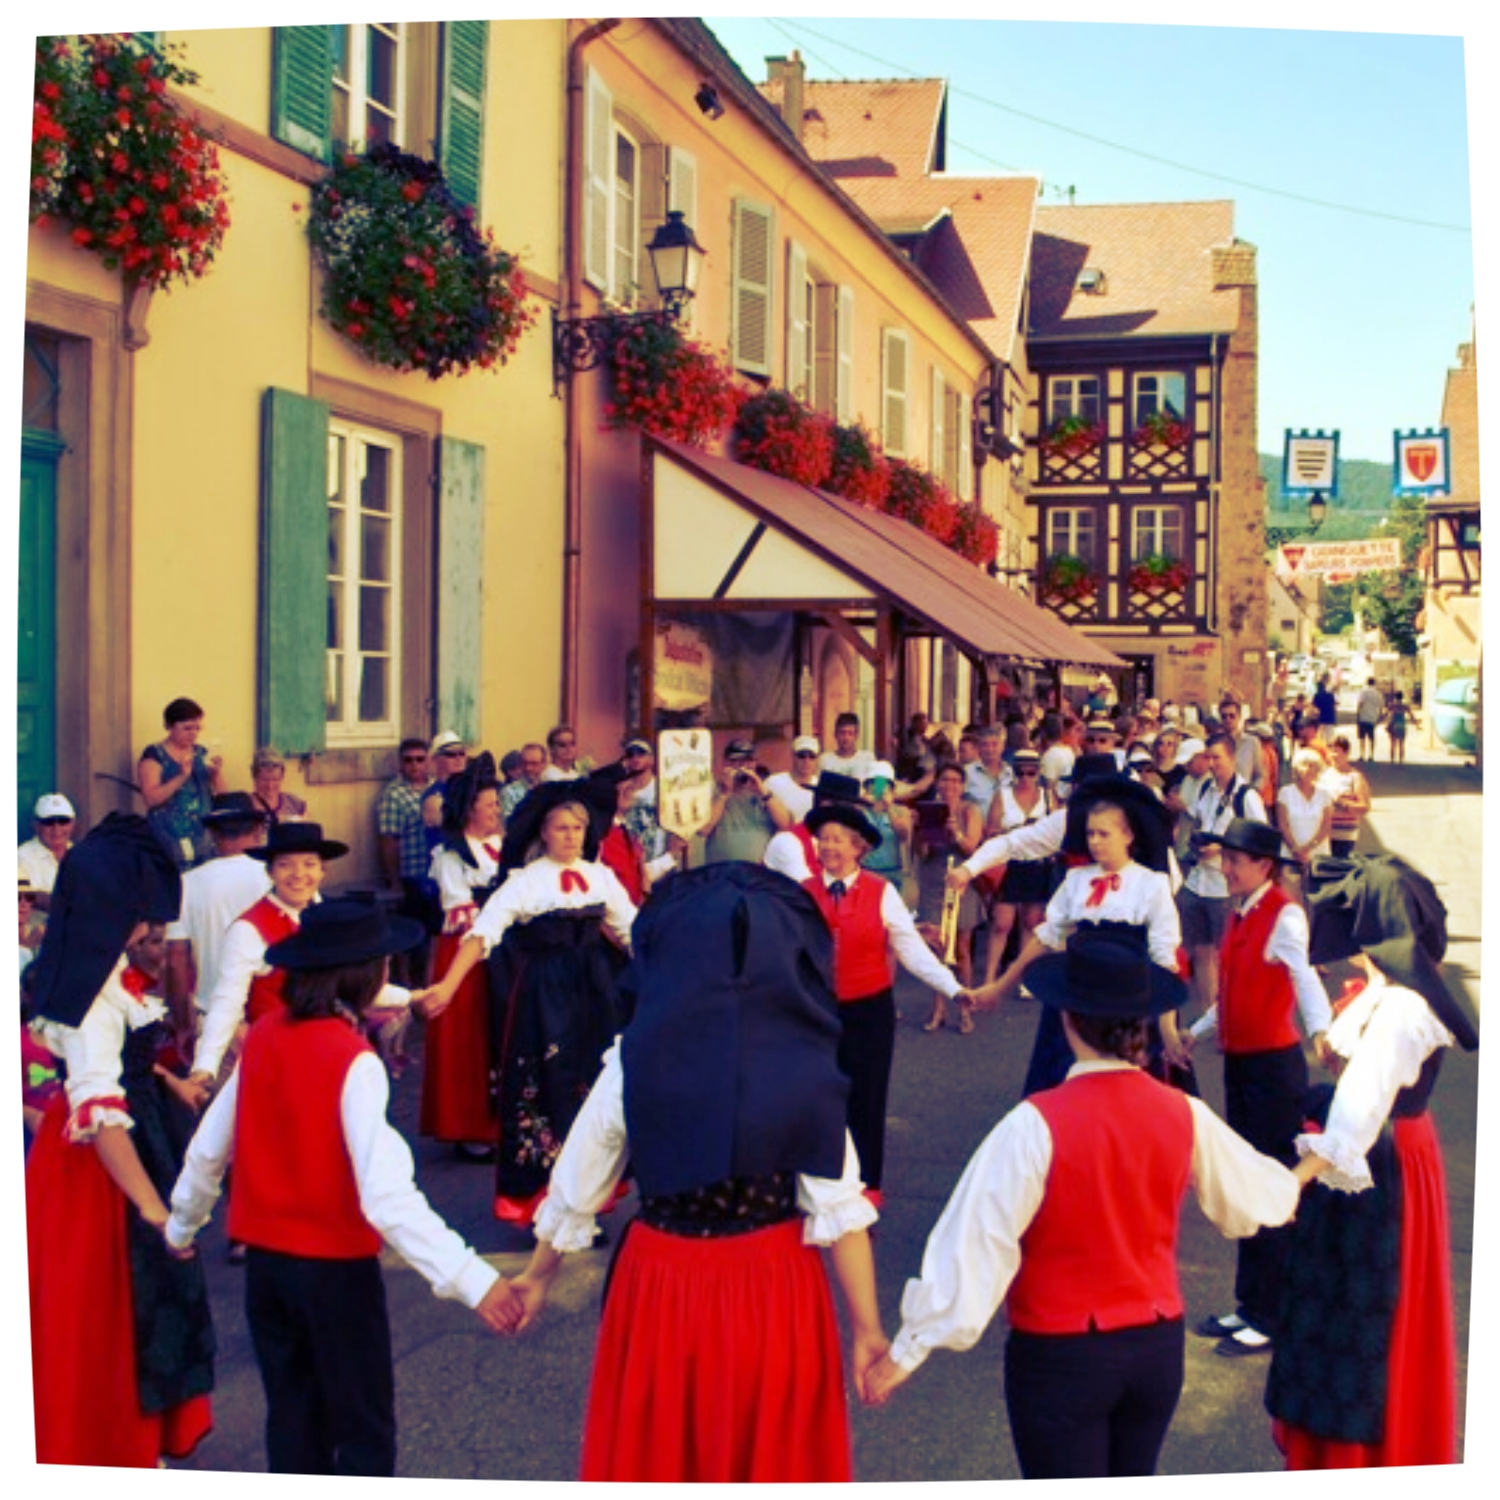 Going to local festivals while traveling is always a great way to REALLY experience local life.  But if you go to a WINE festival, it's even greater! For the total sum of €3/person in Eguisheim, Alsace we got enter the village's harvest festival and try wines from a dozen local wineries (including Grand Cru wines!), enjoy dancing, traditional costumes, delicious local cuisine, and an opportunity to hang with the locals!